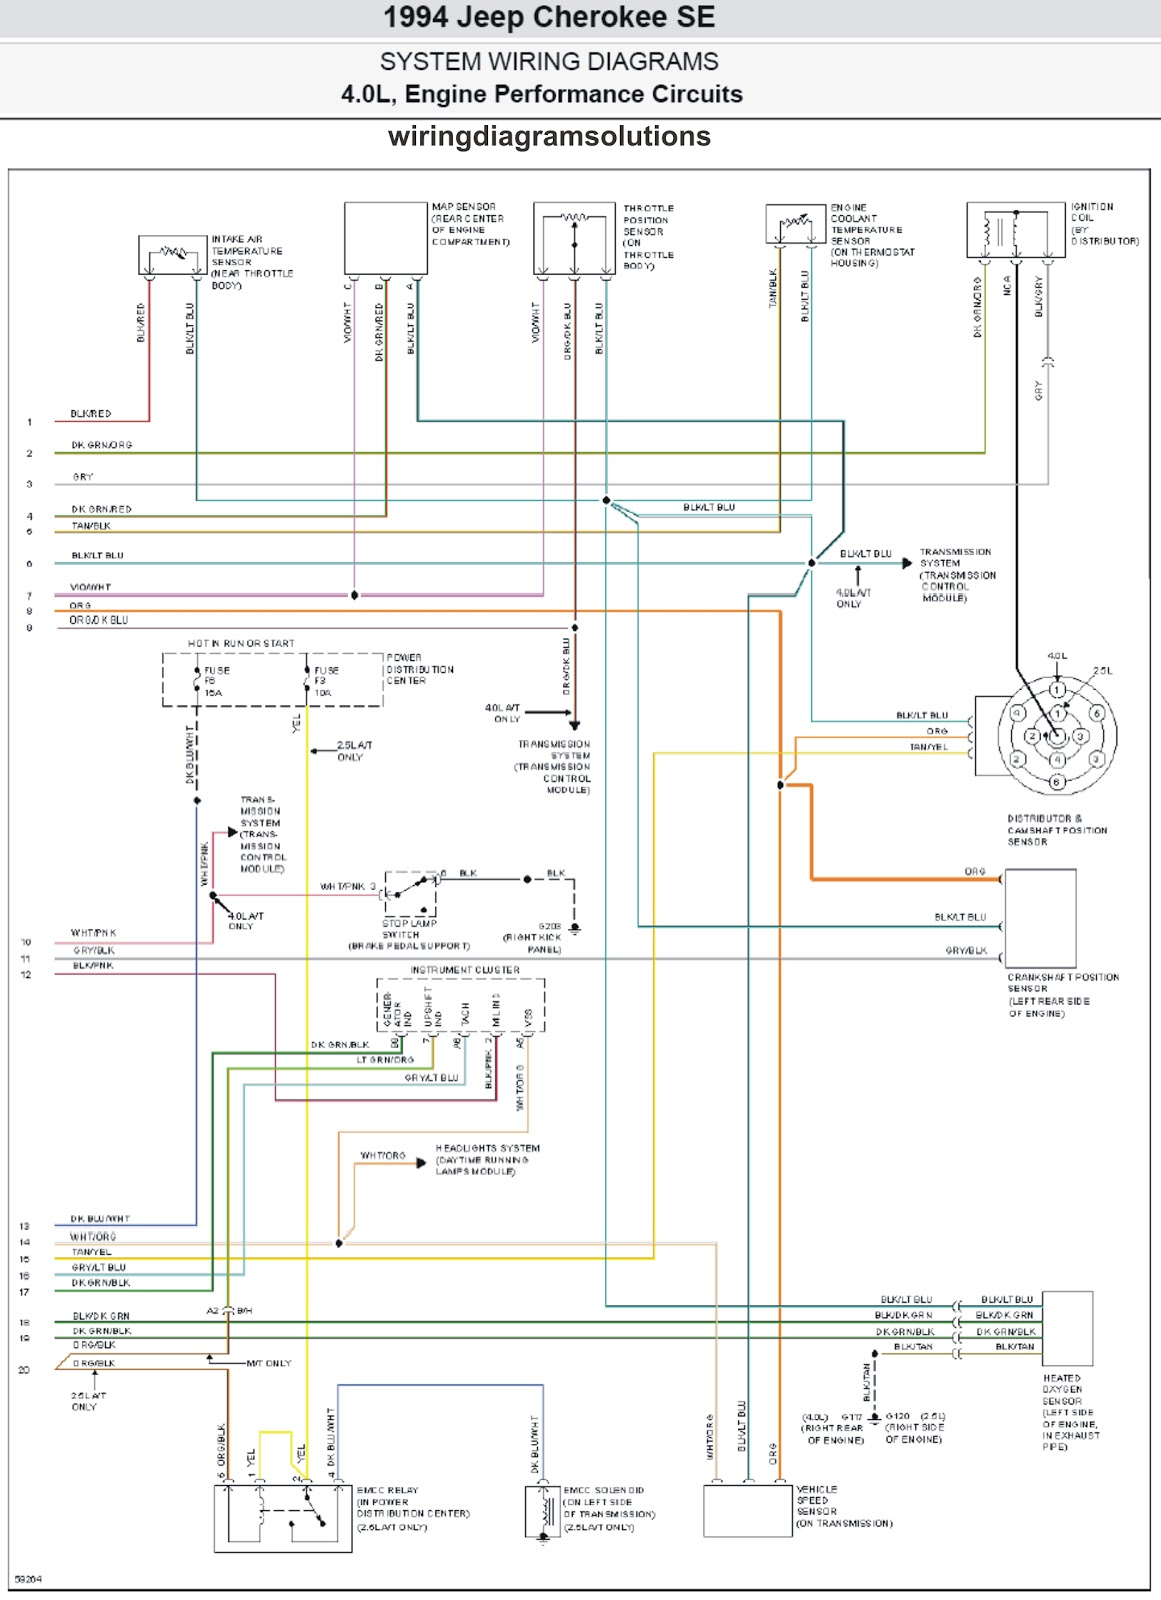 download [diagram] 2019 jeep cherokee wiring diagram full version hd  quality wiring diagram - okcwebdesigner.kinggo.fr  okcwebdesigner kinggo fr